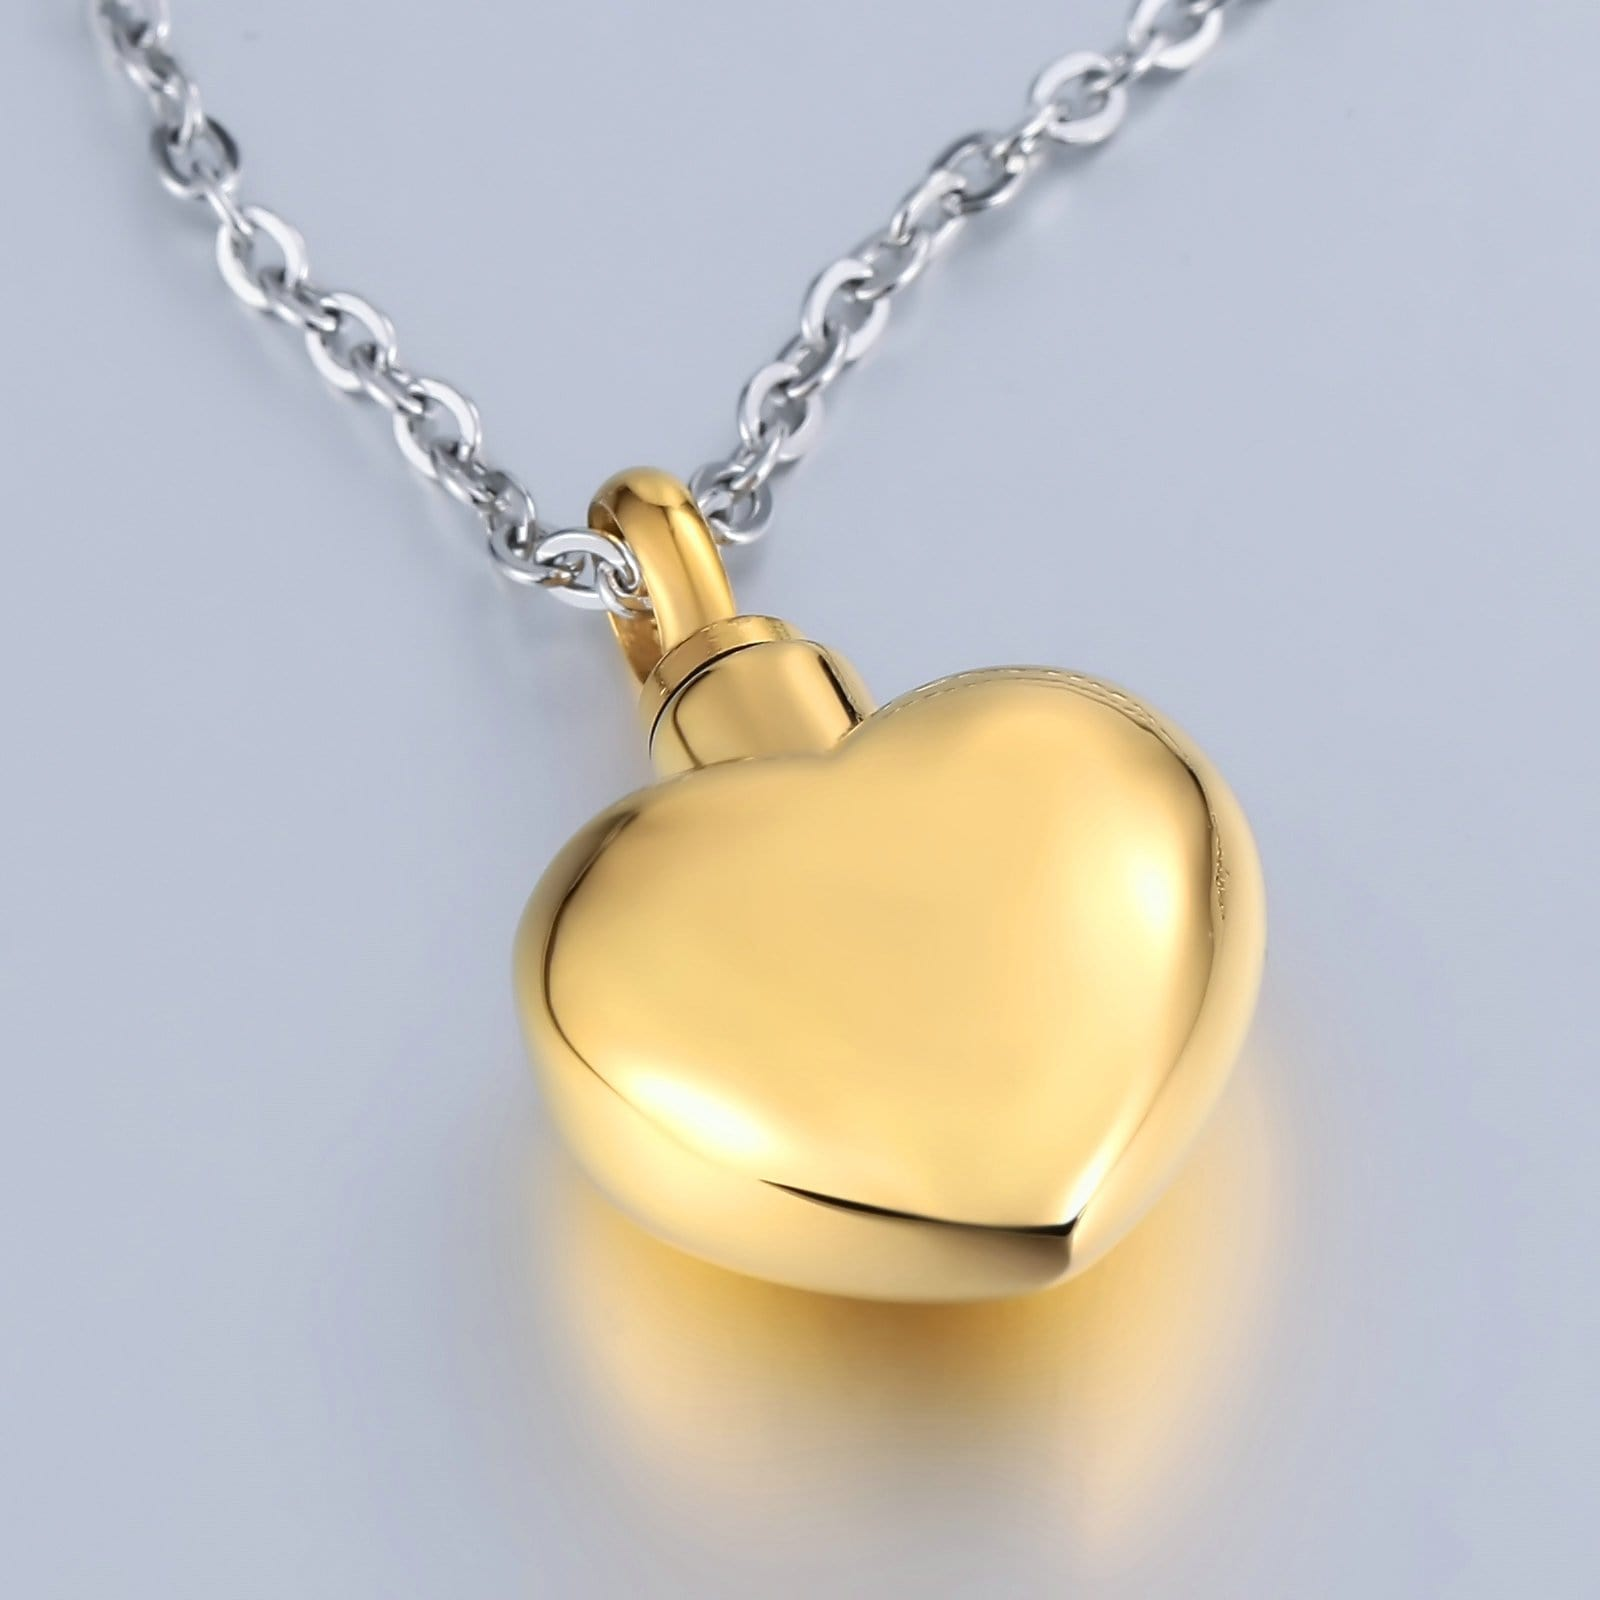 Cremation Ashes Necklace Pendant Stainless Steel Gold Heart 2 x 3cm